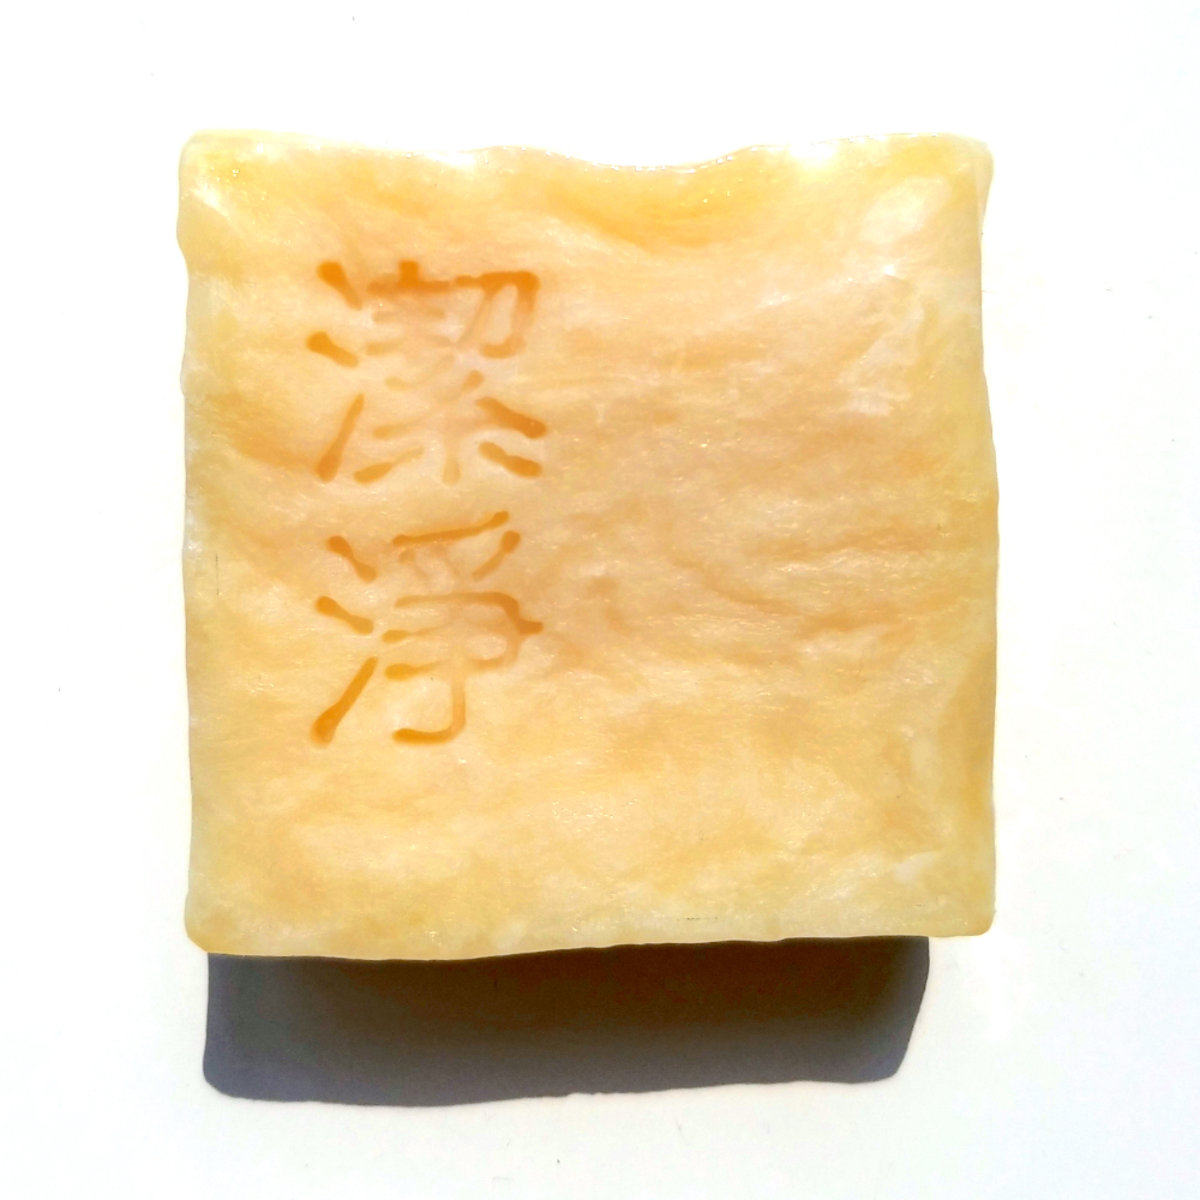 Multipurpose Natural Plant Based Soap Handmade by Local Disabled Artisans